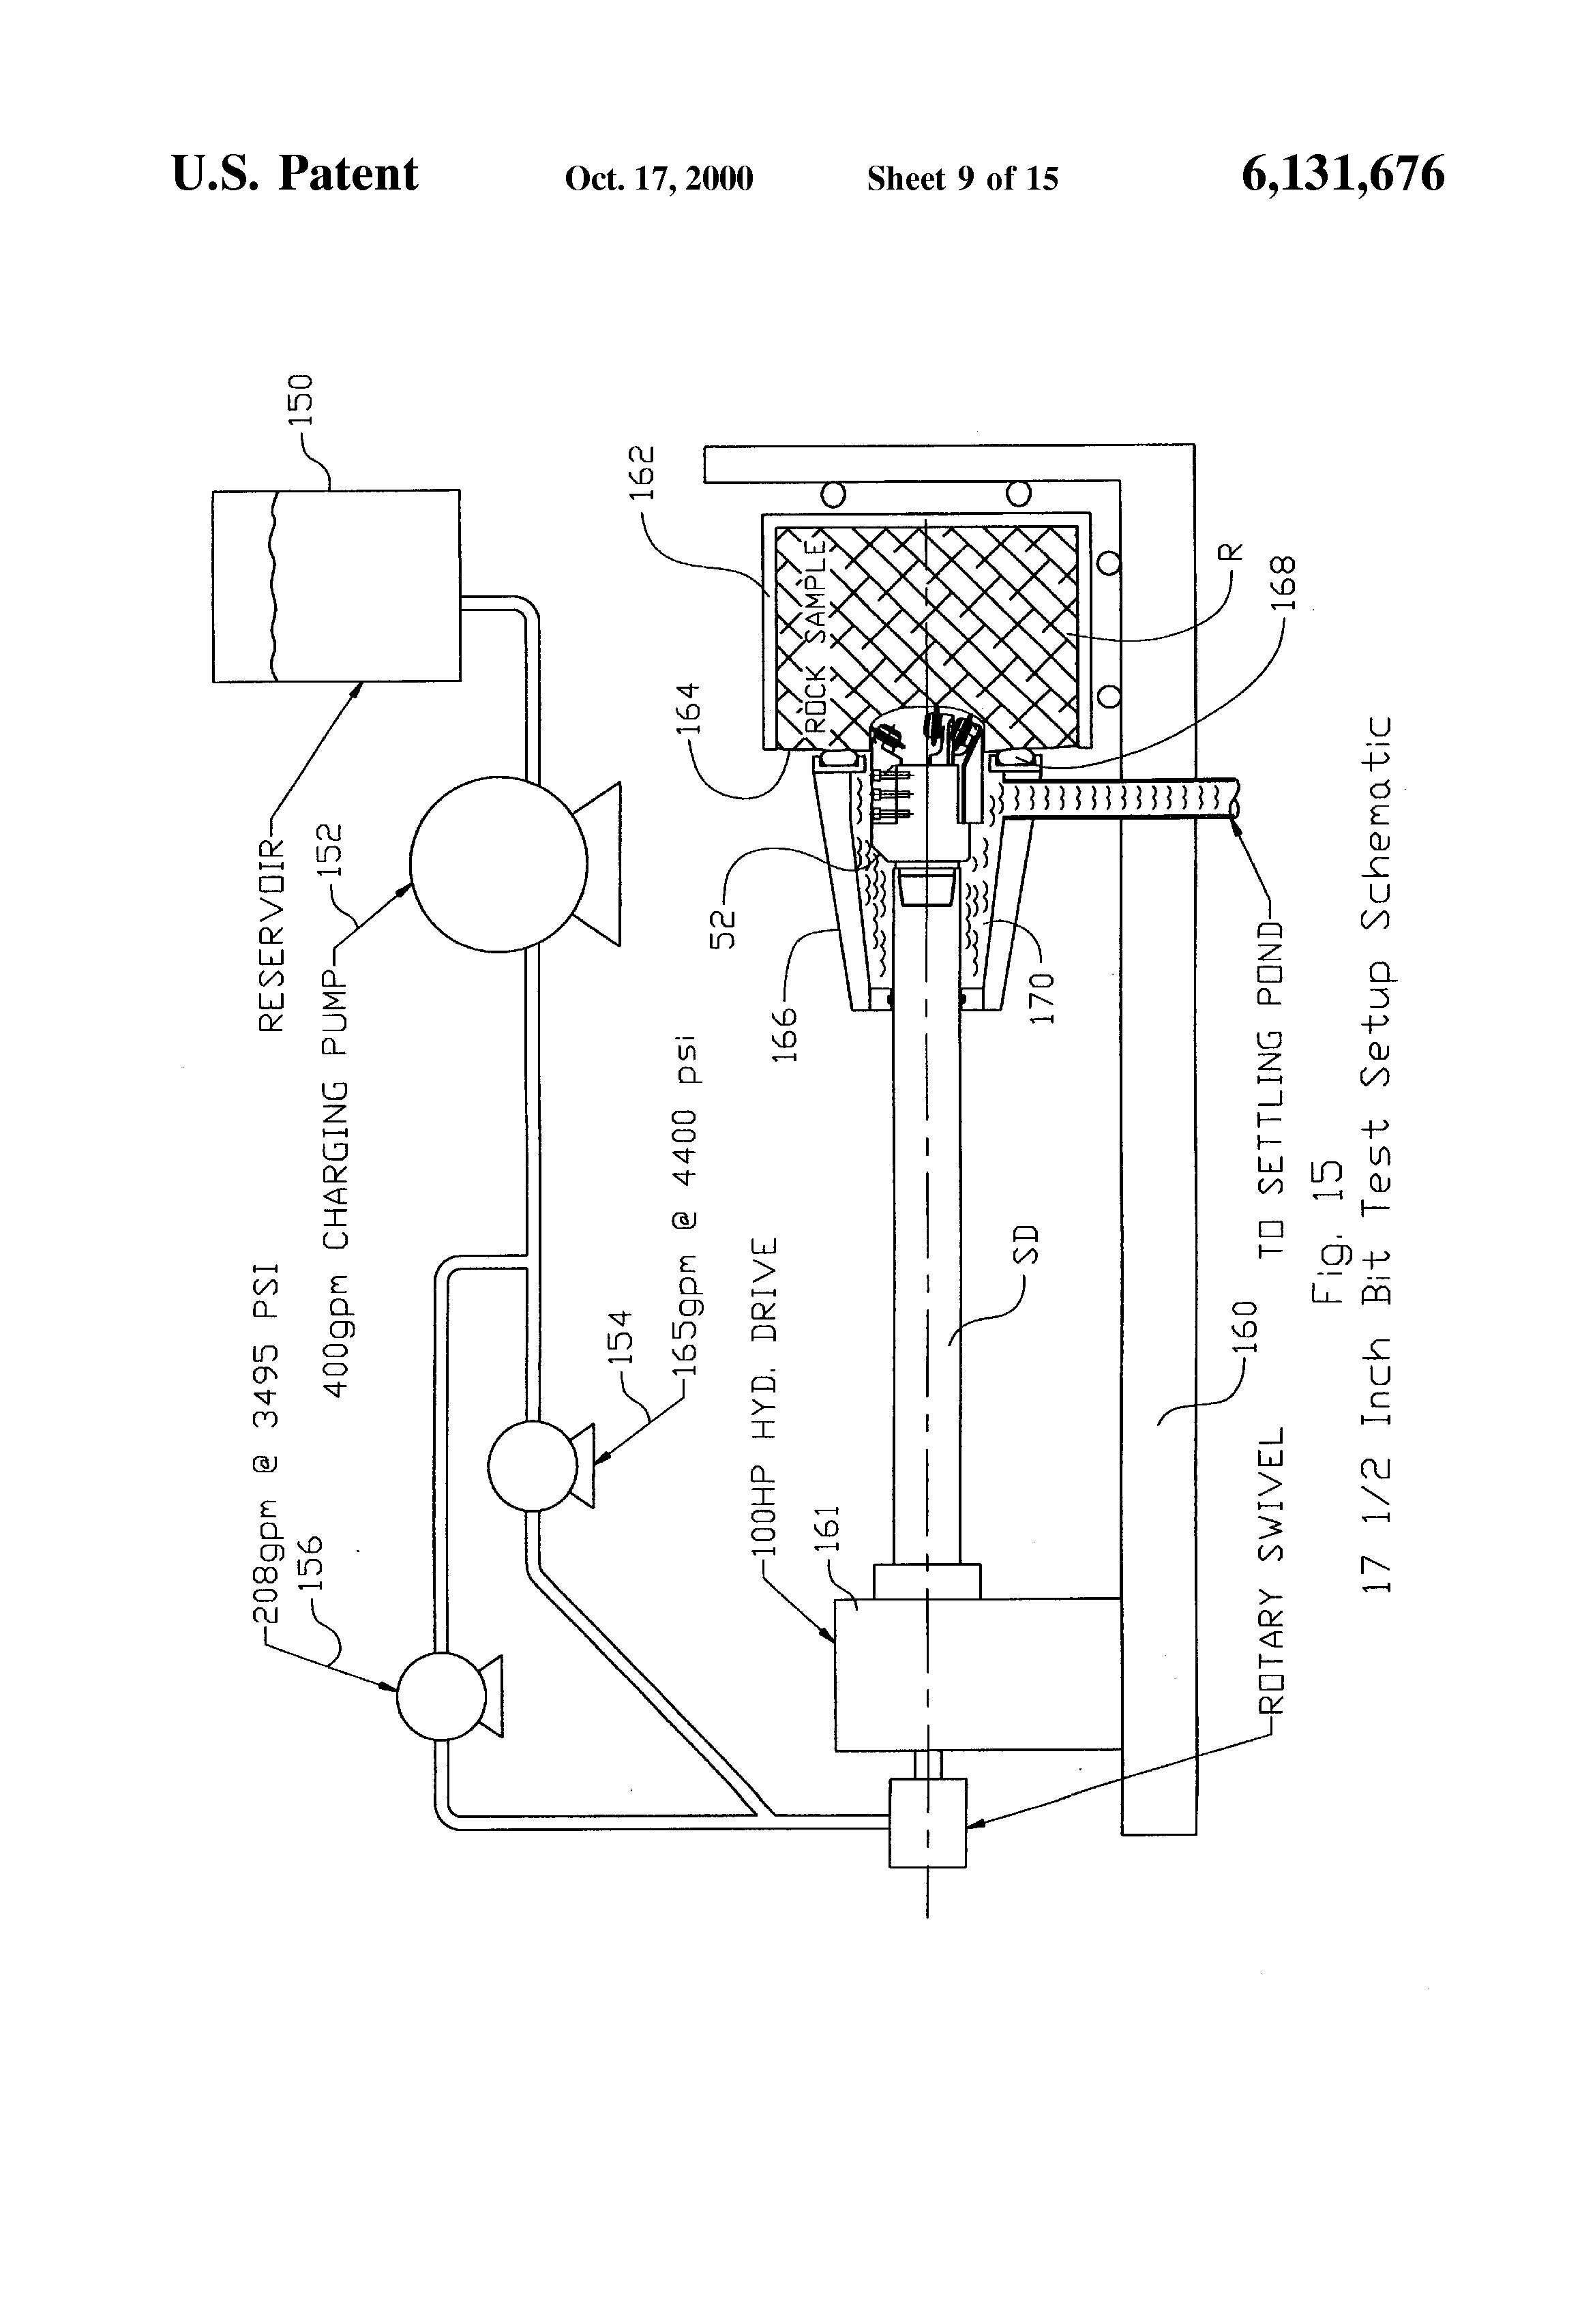 patent us6131676 - small disc cutter, and drill bits, cutterheads, Wiring diagram